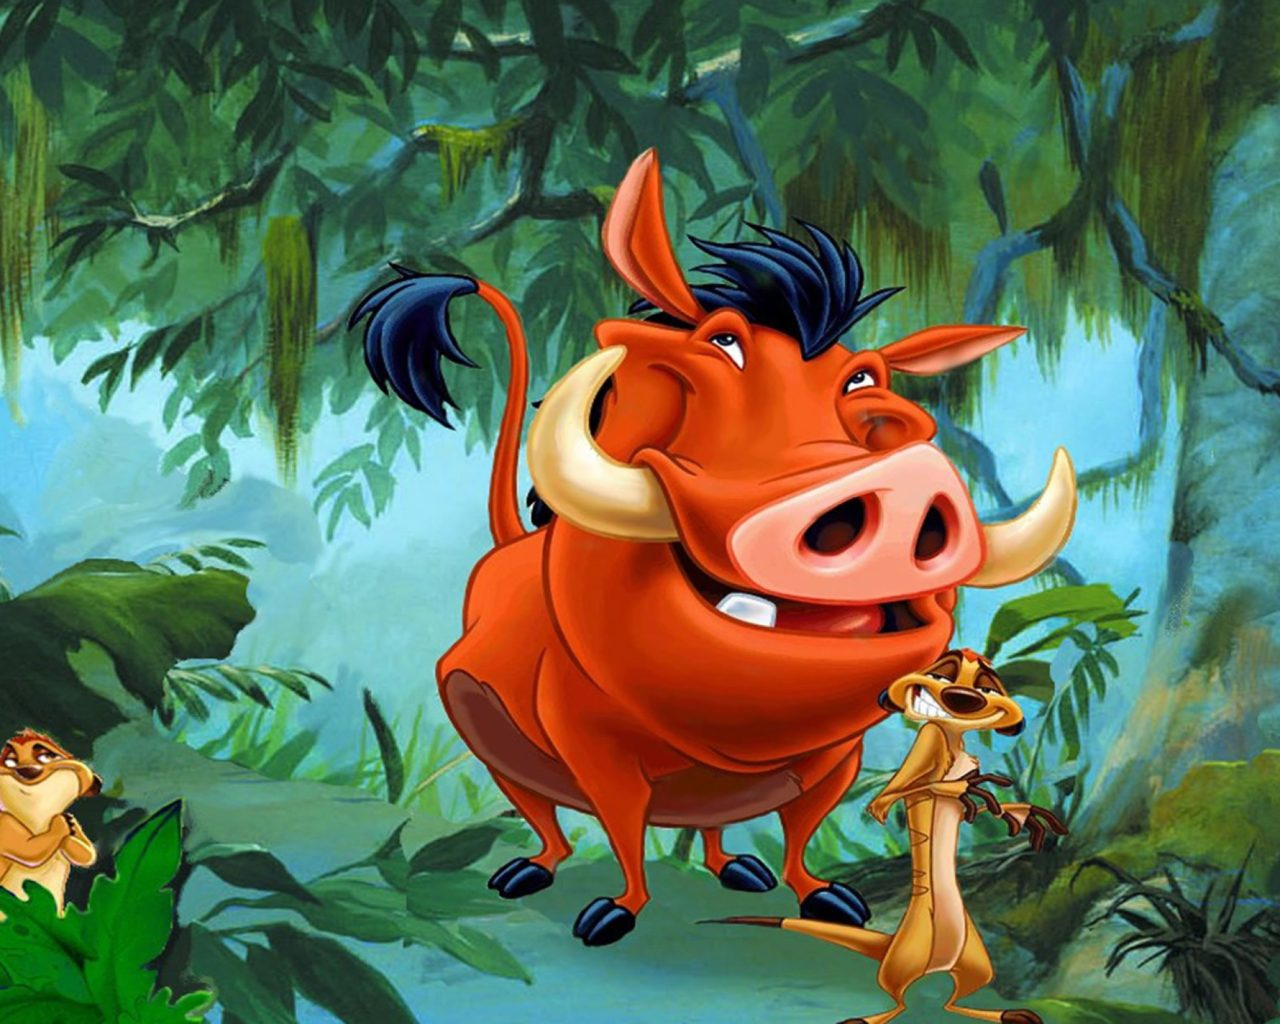 Disney Cars Wallpapers Free Timon And Pumbaa Characters From The Lion King Hd